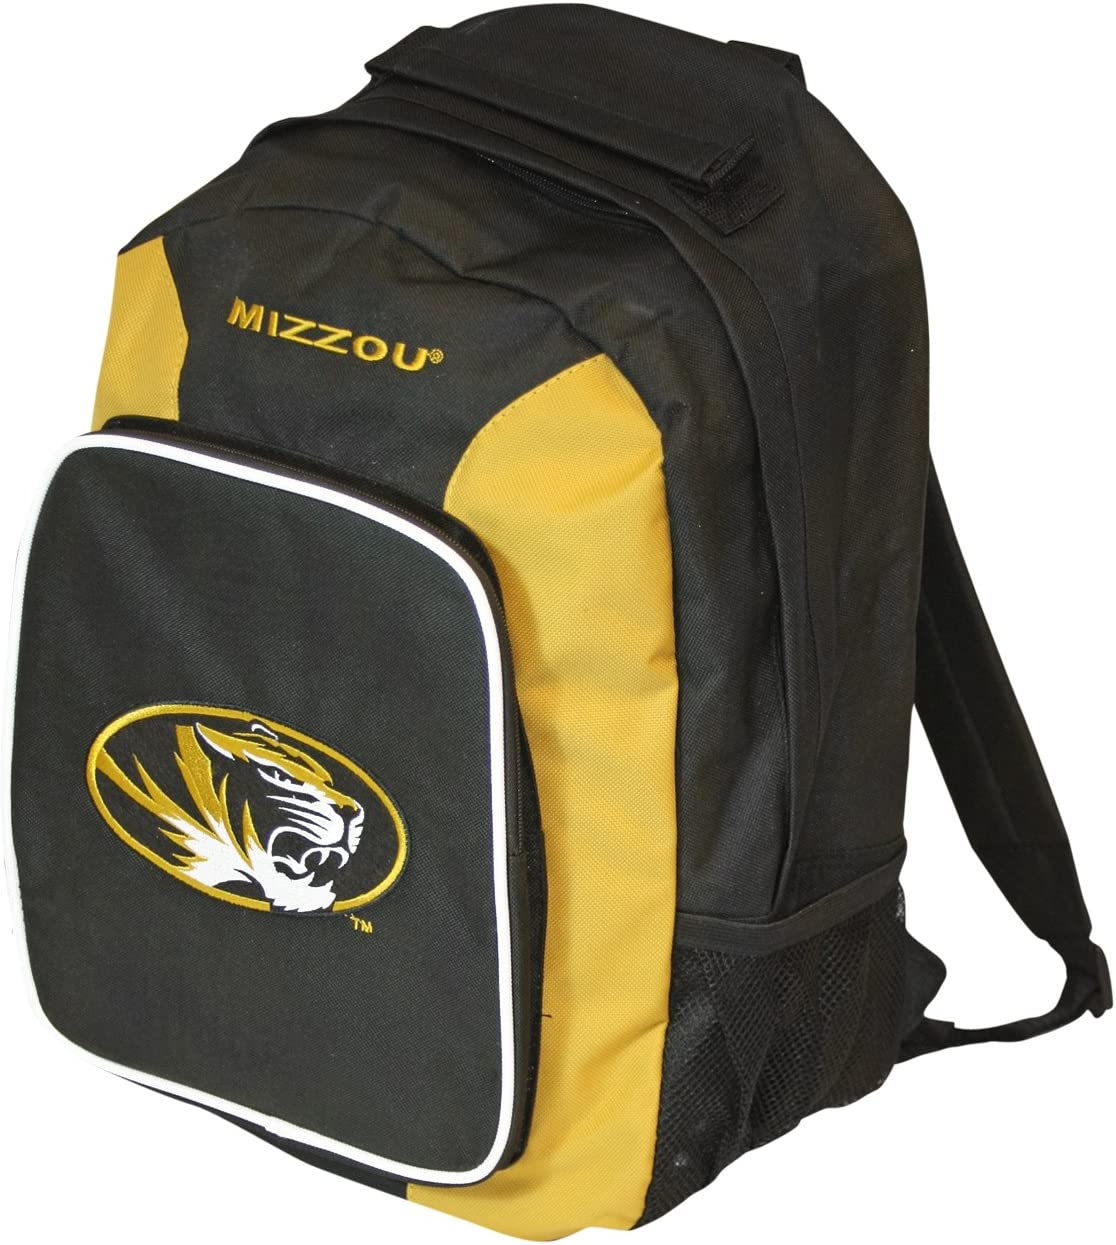 Missouri Tigers Backpack Southpaw Style Wheat : Sports Fan Backpacks : Sports & Outdoors